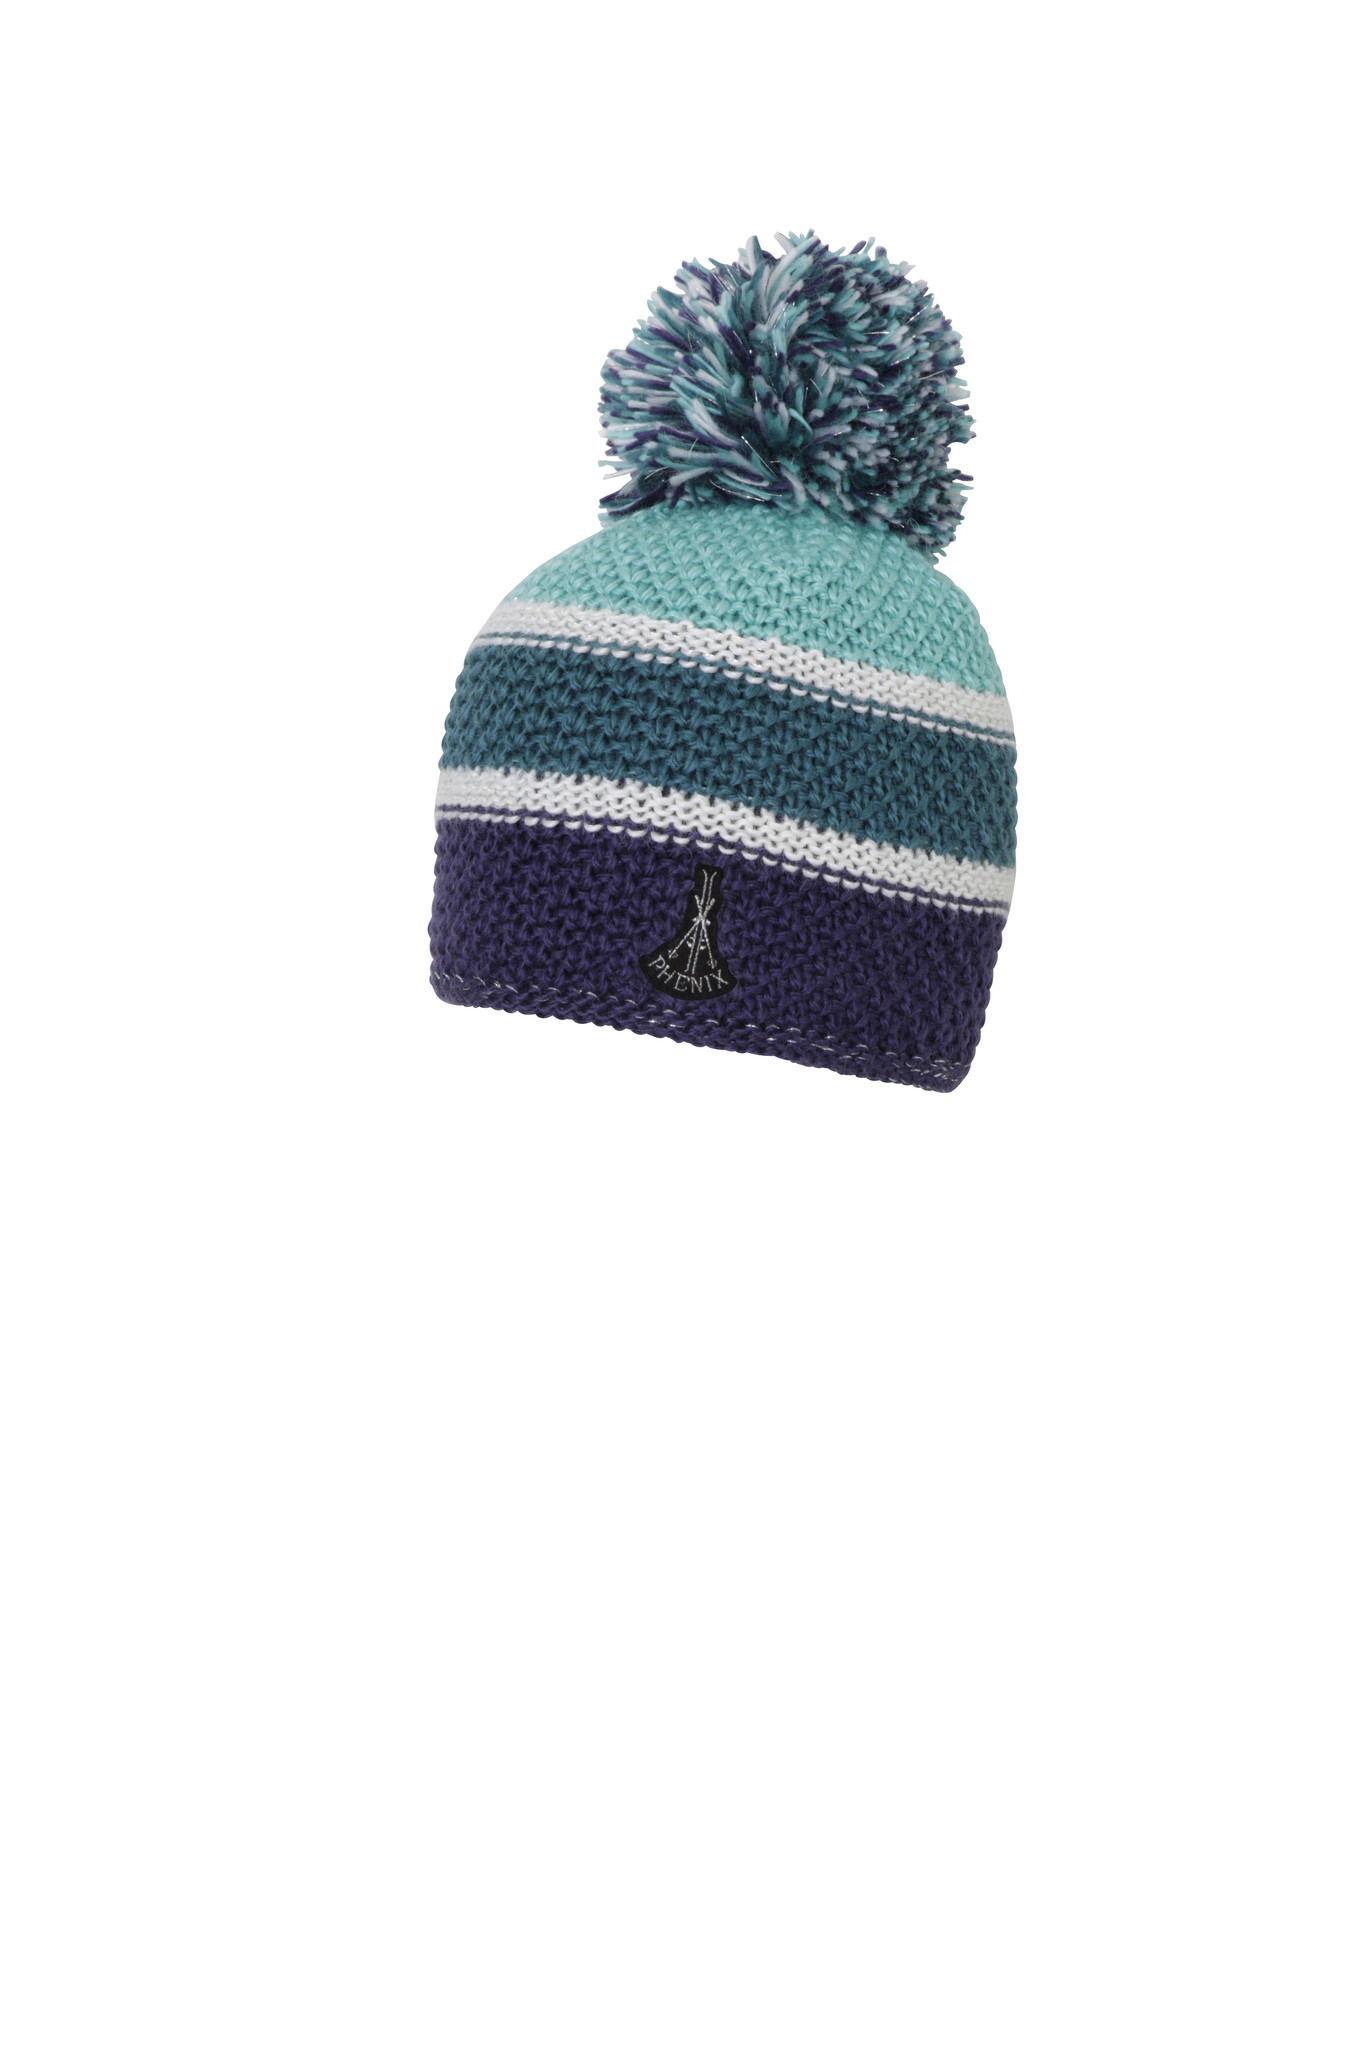 PHENIX Emerald Watch Cap